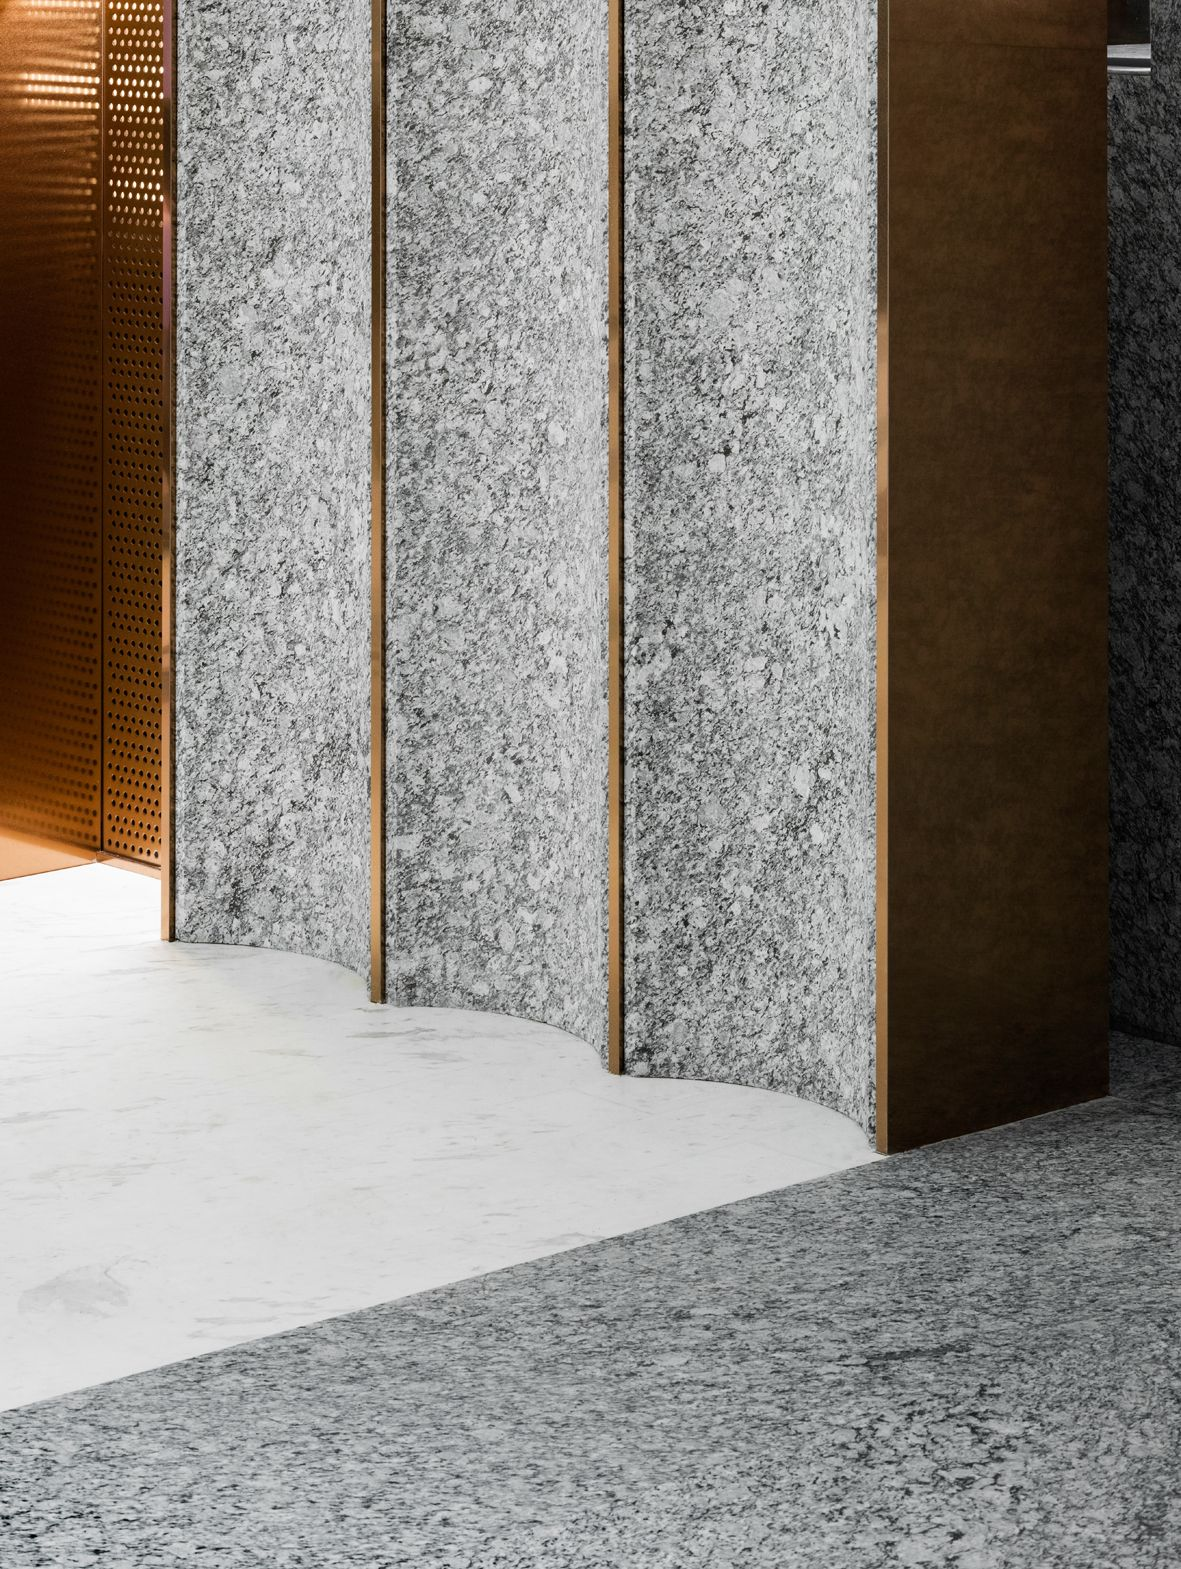 Pin By Mildred Woodson On Details Interior Design School Wall Design Lobby Design